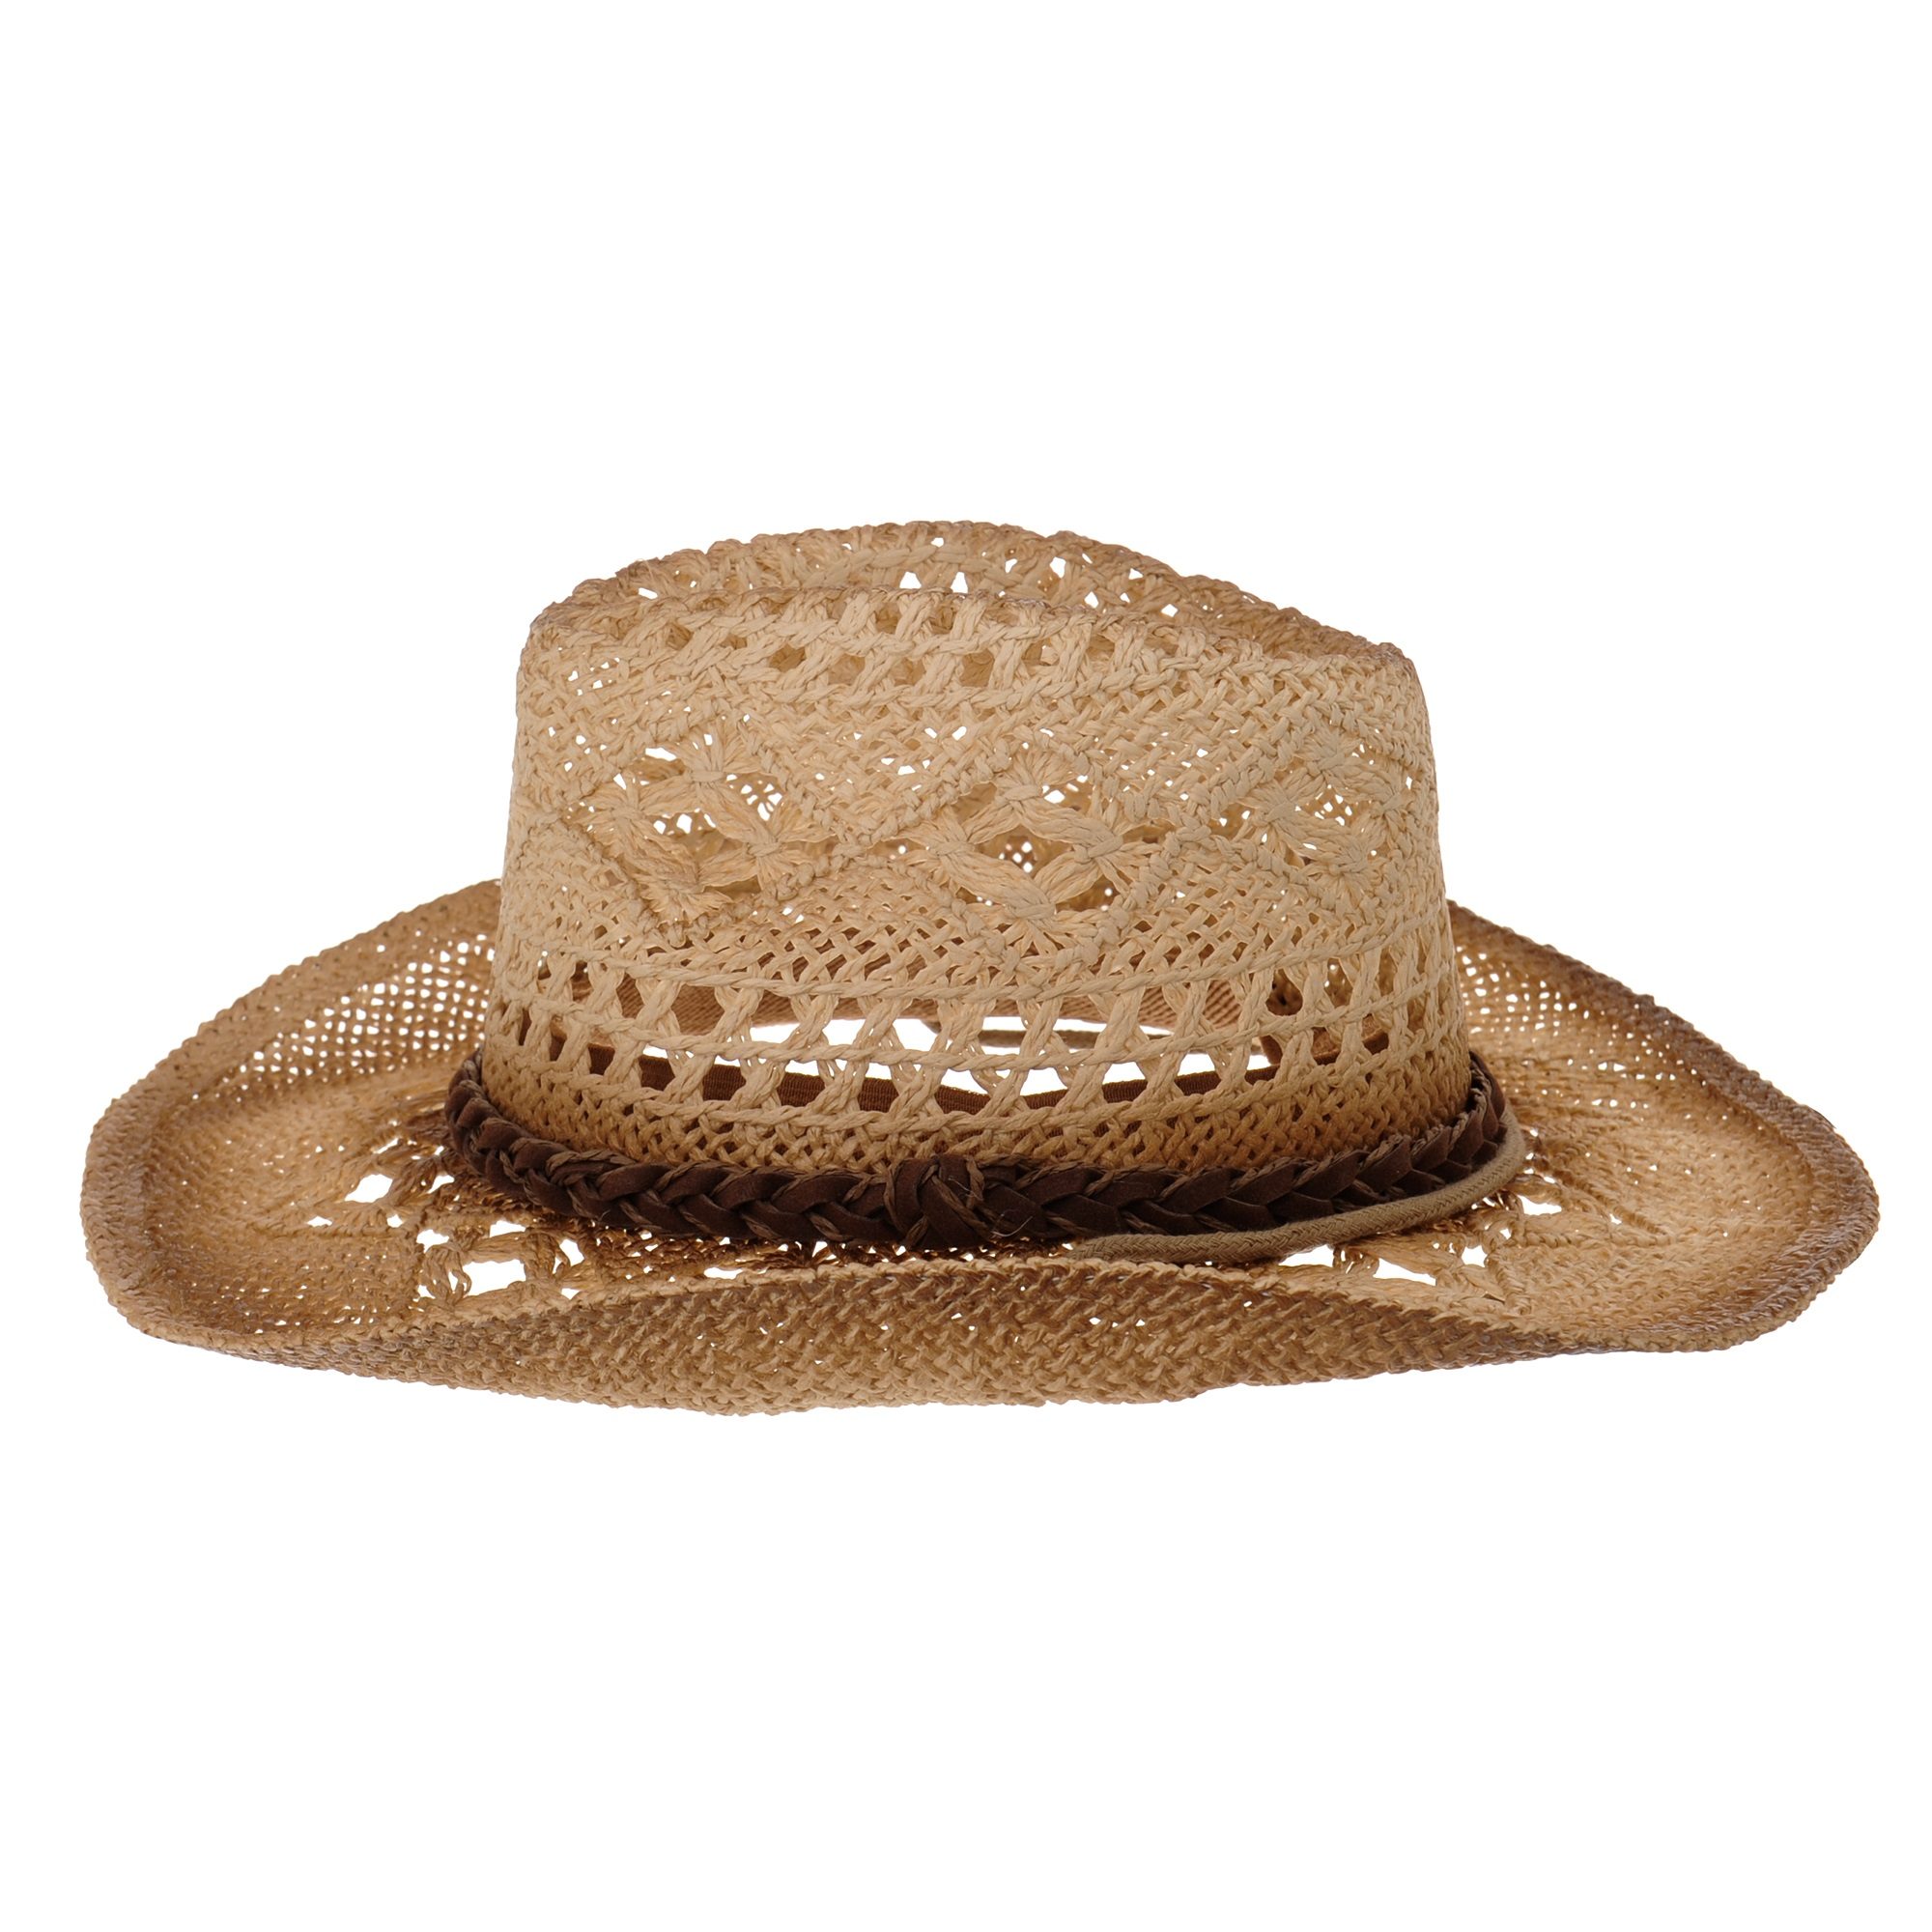 23ffbf3cab2 WITHMOONS Western Cowboy Hat Cool Paper Straw Banded Chin Strap GN8765  (Black) - Walmart.com